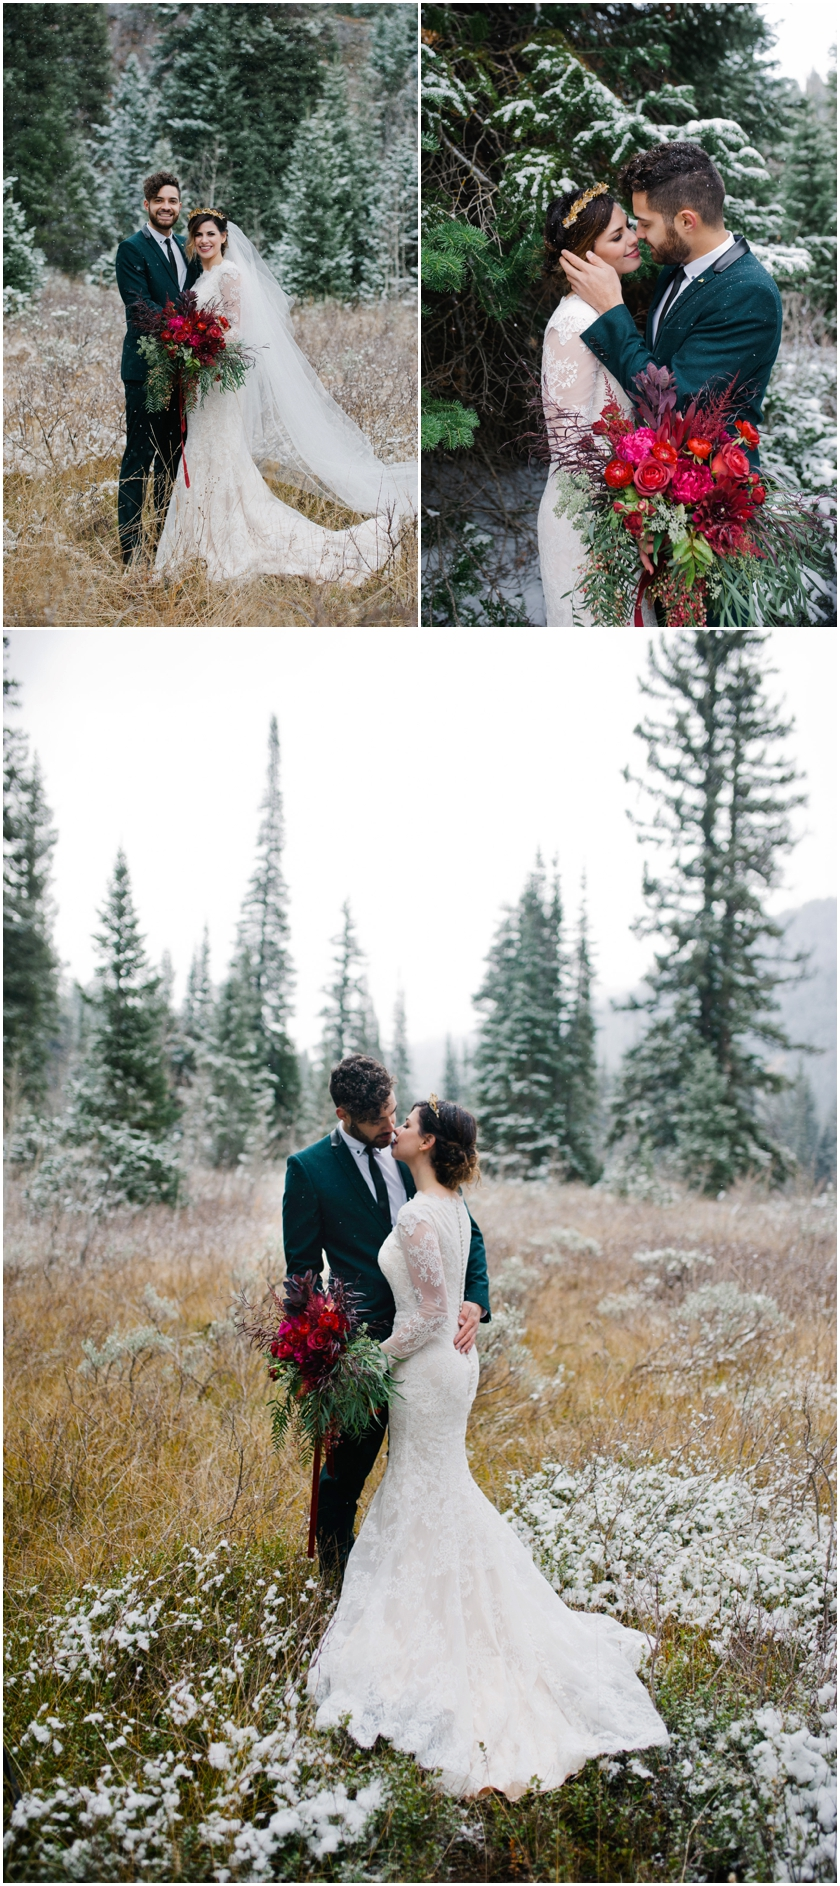 004Alternative Wedding Photographer Green Suit Utah Wedding Photographer Amy Cloud Photography